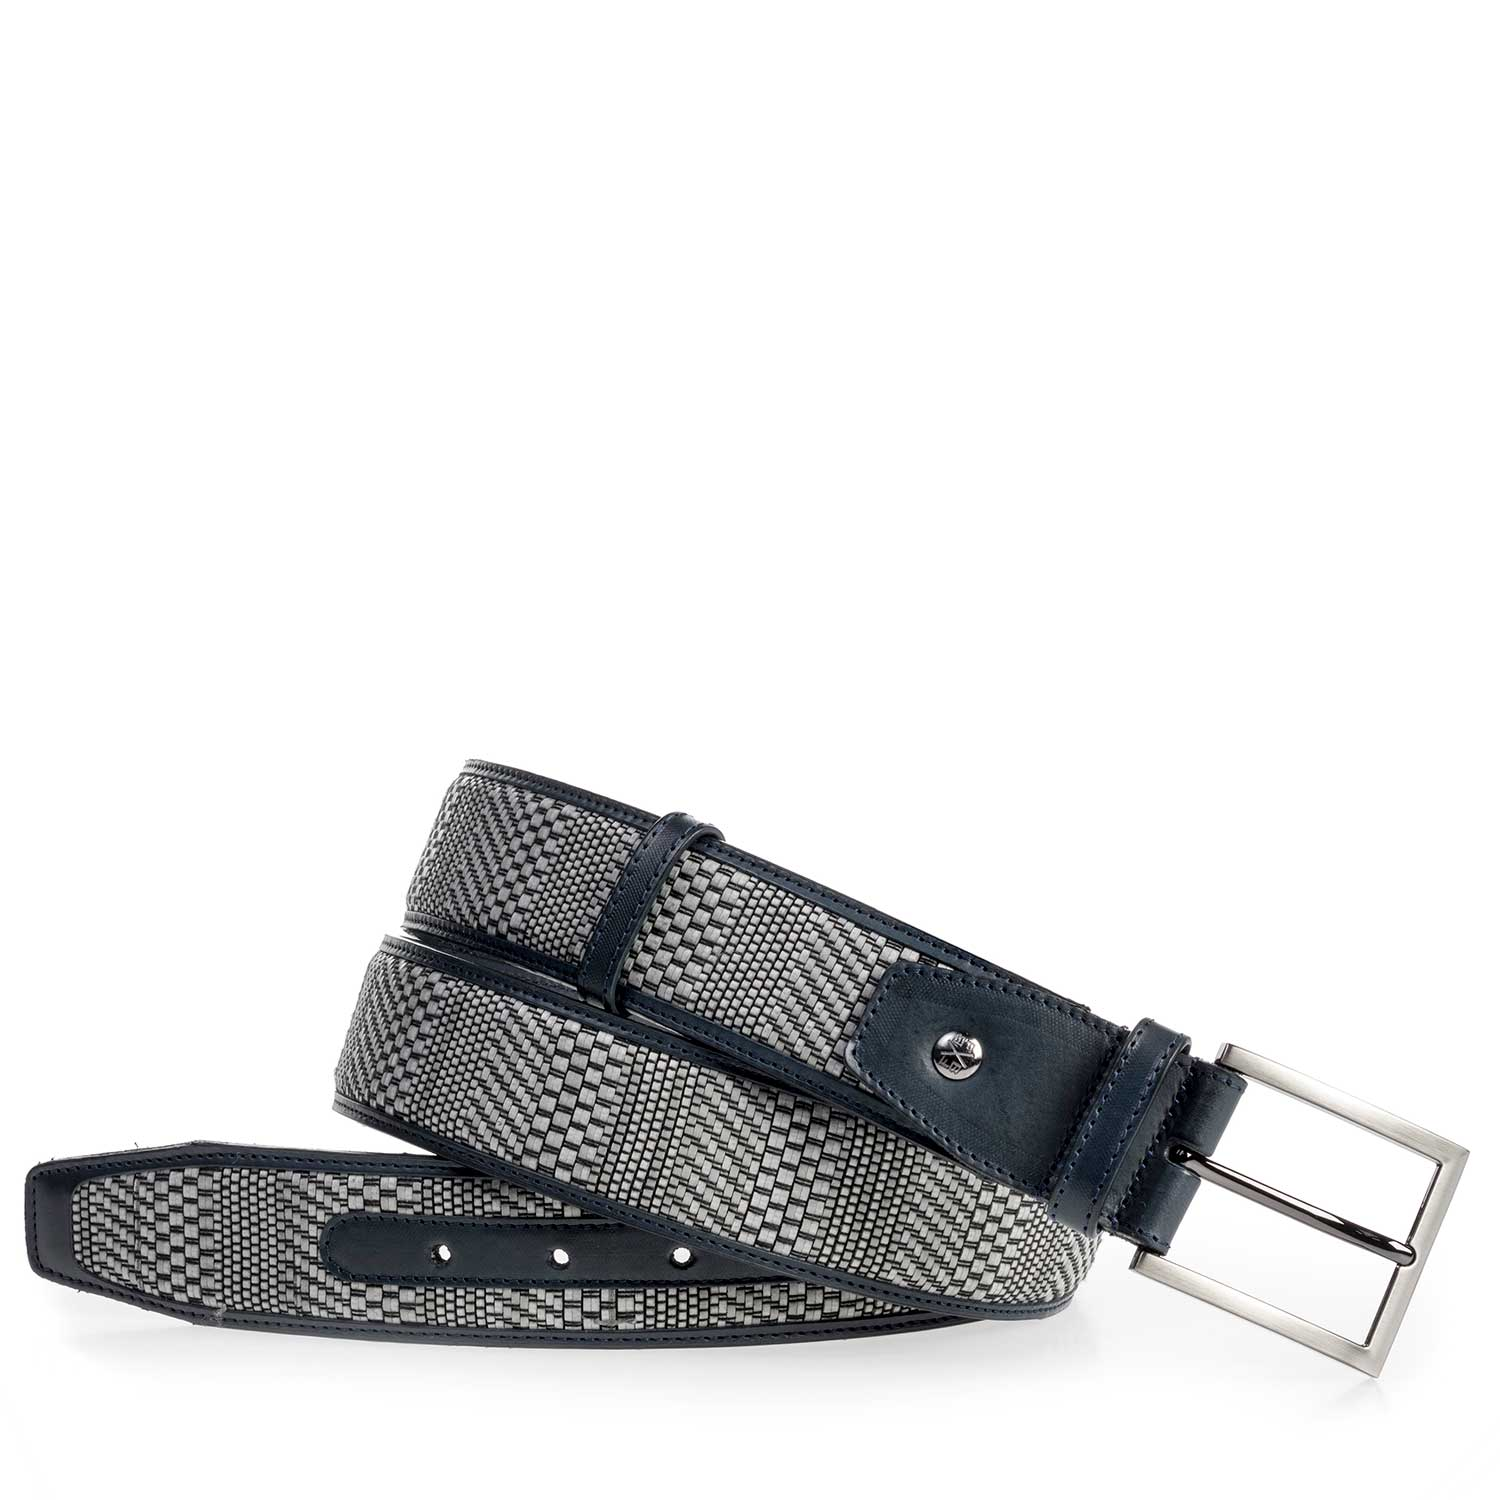 75159/12 - Grey belt made of braided leather